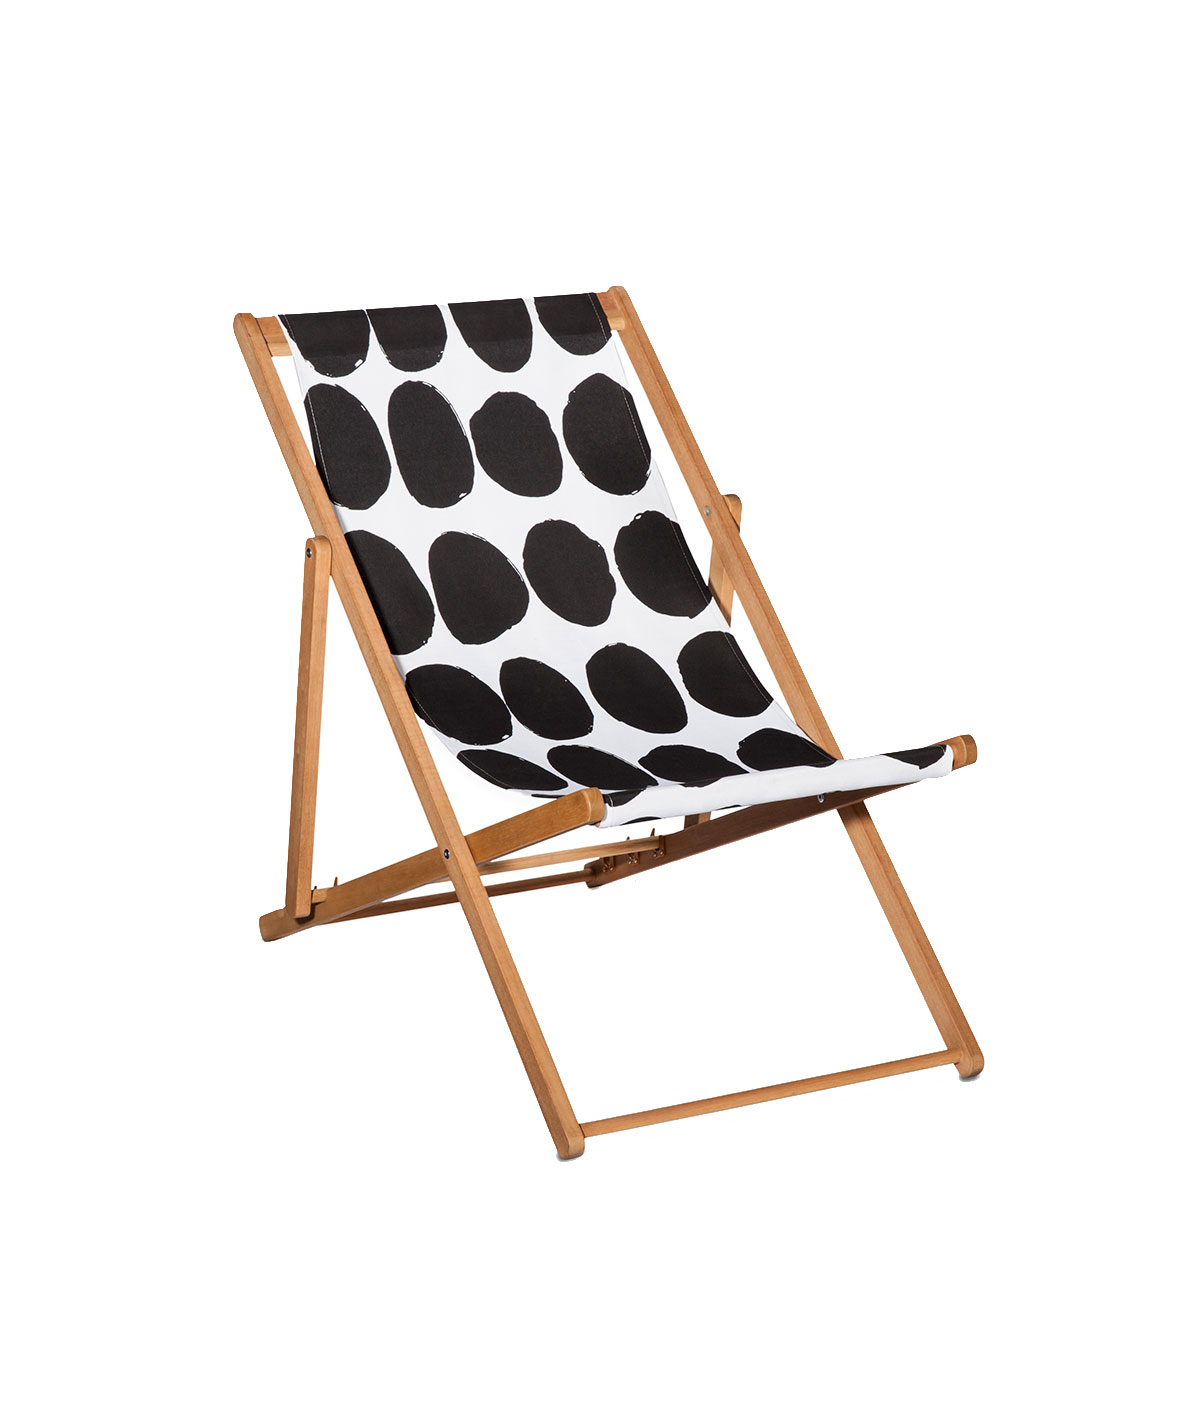 Deck Chair in Koppelo Print